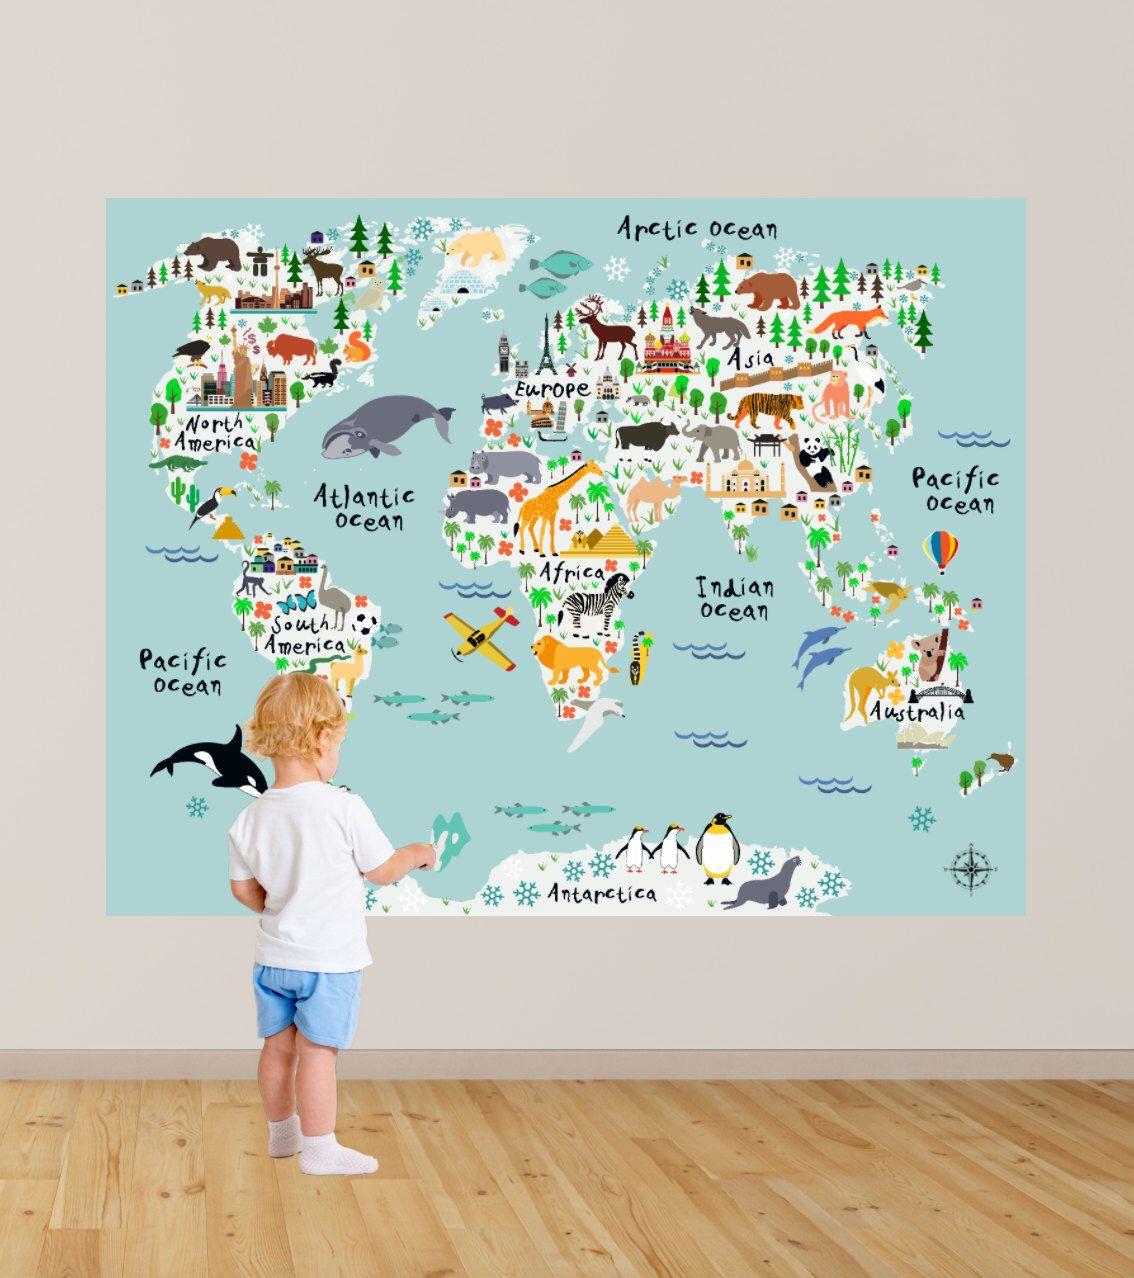 Huge map of the world playroom decal world map wall decals kids map of the world playroom decal world map wall decals kids map bedroom decals playroom decals boys wall decal rockymountaindecals gumiabroncs Gallery